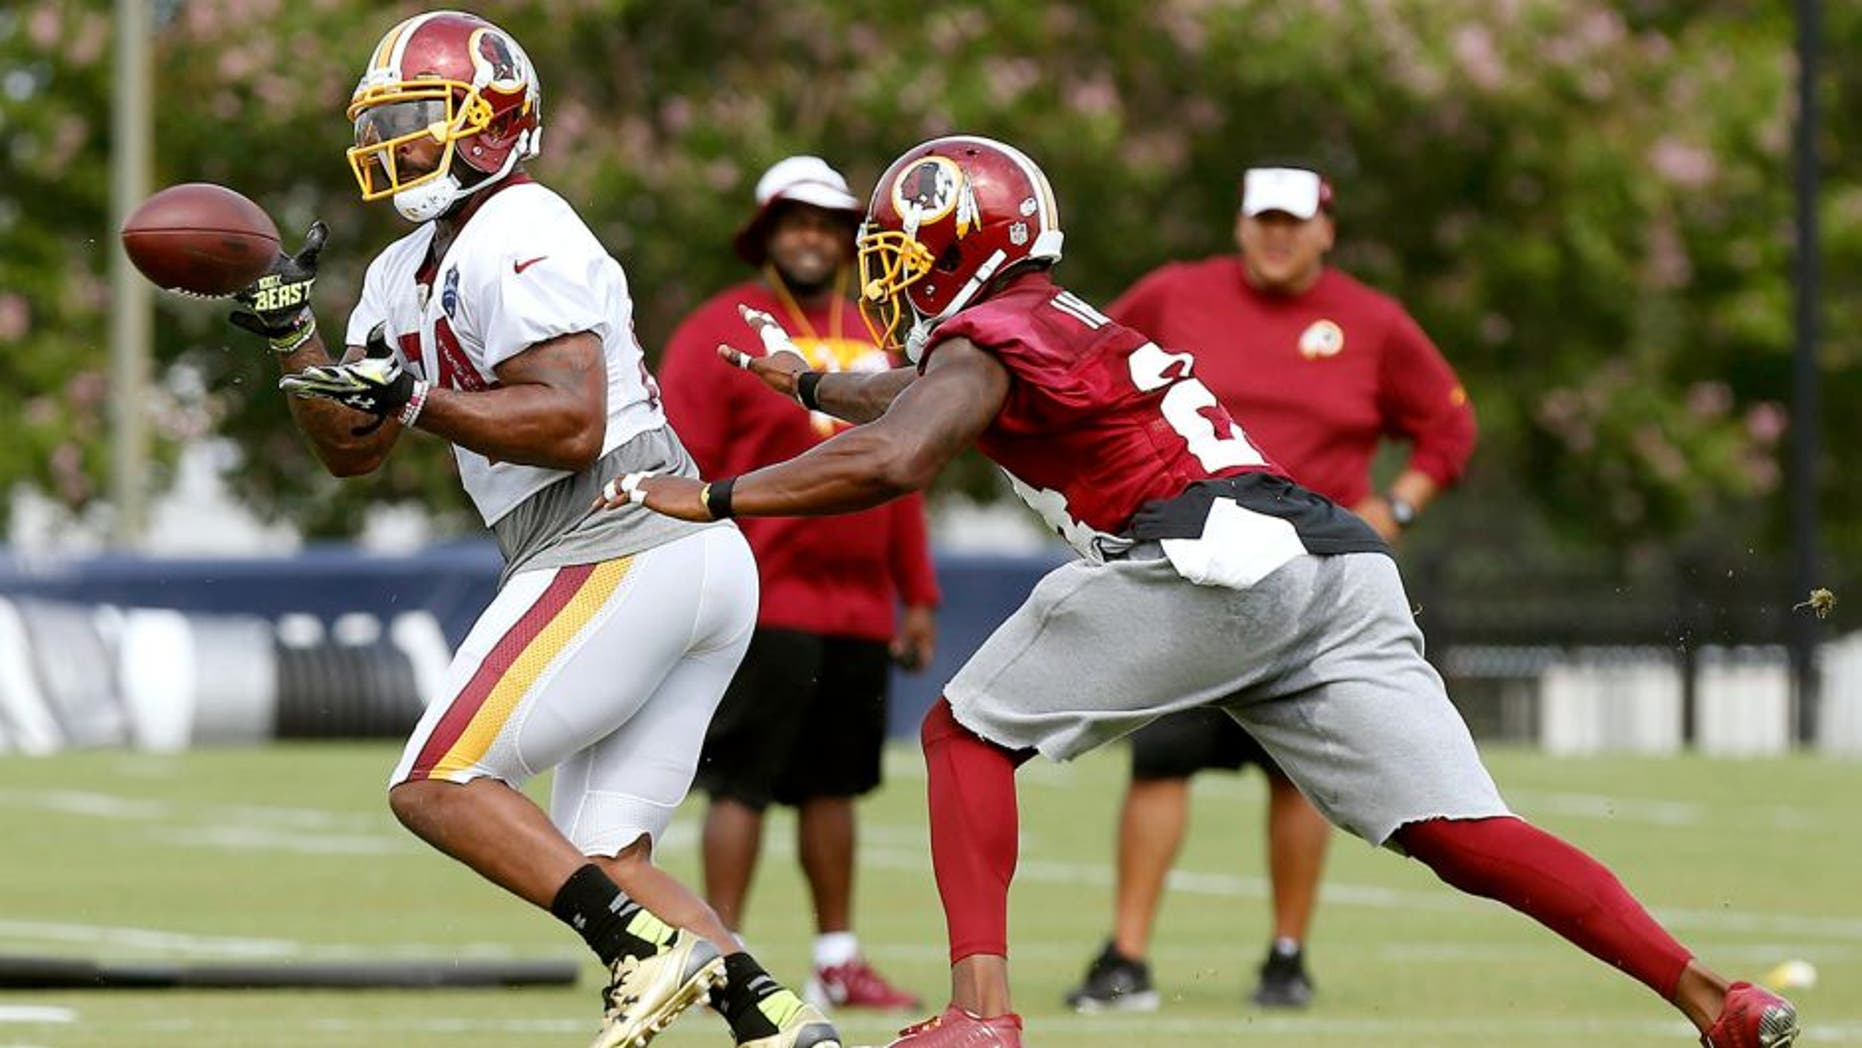 Jul 30, 2015; Richmond, VA, USA; Washington Redskins tight end Niles Paul (84) catches the ball in front of Redskins defensive back Duke Ihenacho (24) during drills as part of afternoon practice on day one of training camp at the Washington Redskins Bon Secours Training Center. Mandatory Credit: Geoff Burke-USA TODAY Sports